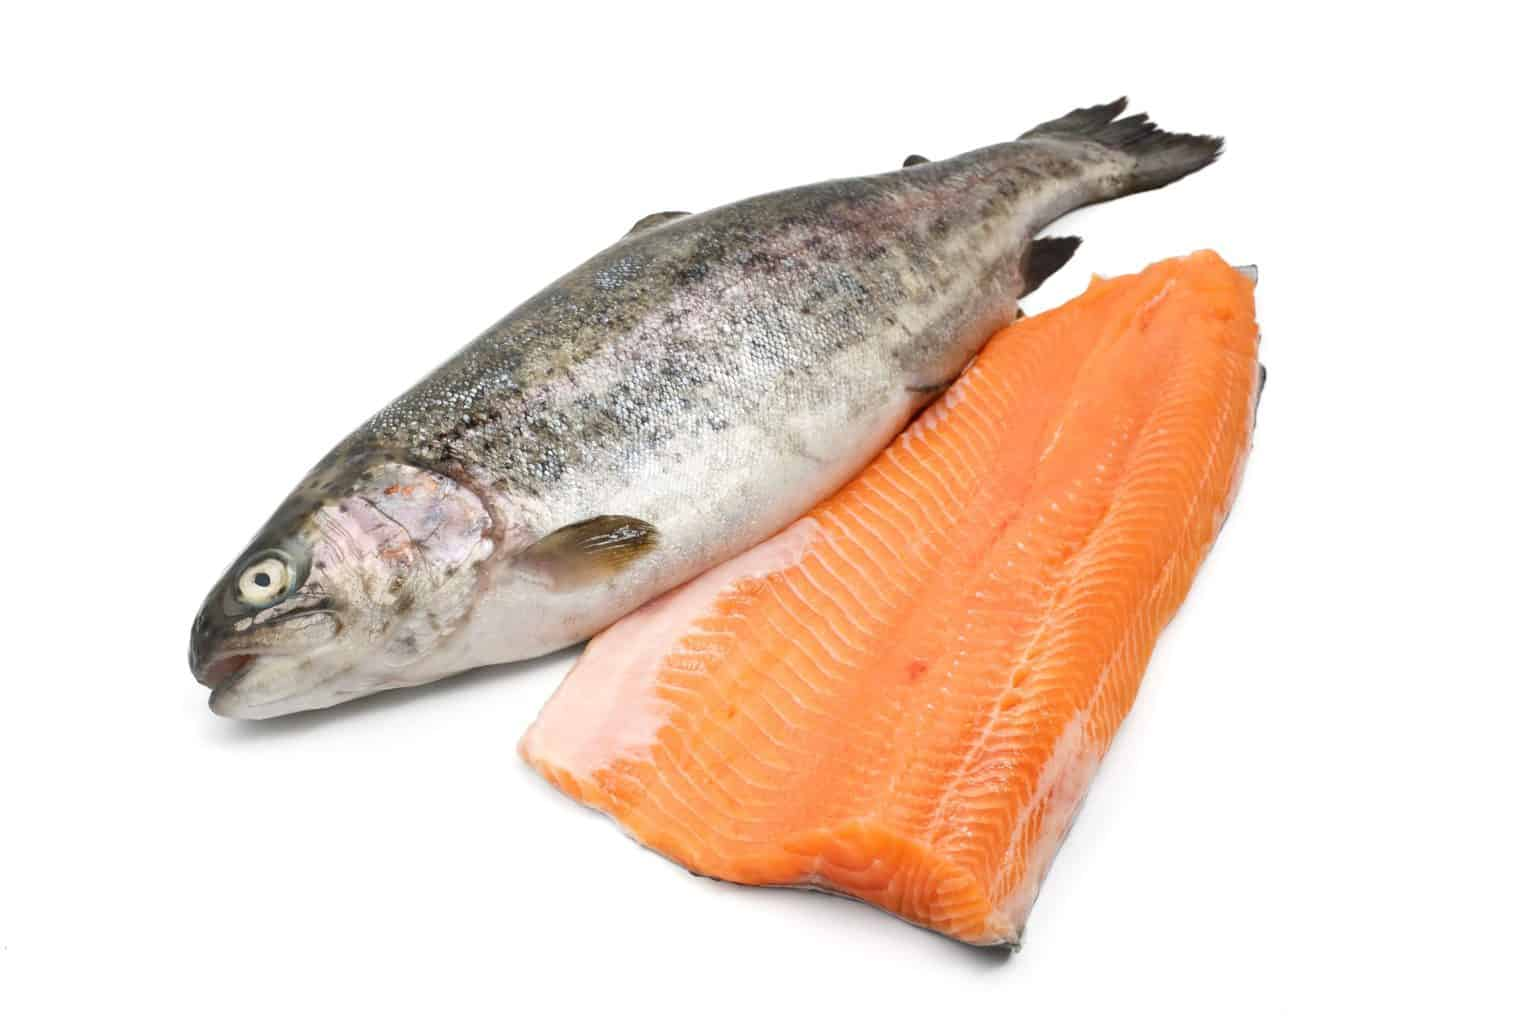 fresh trout and fillet over white background - salmon vs trout